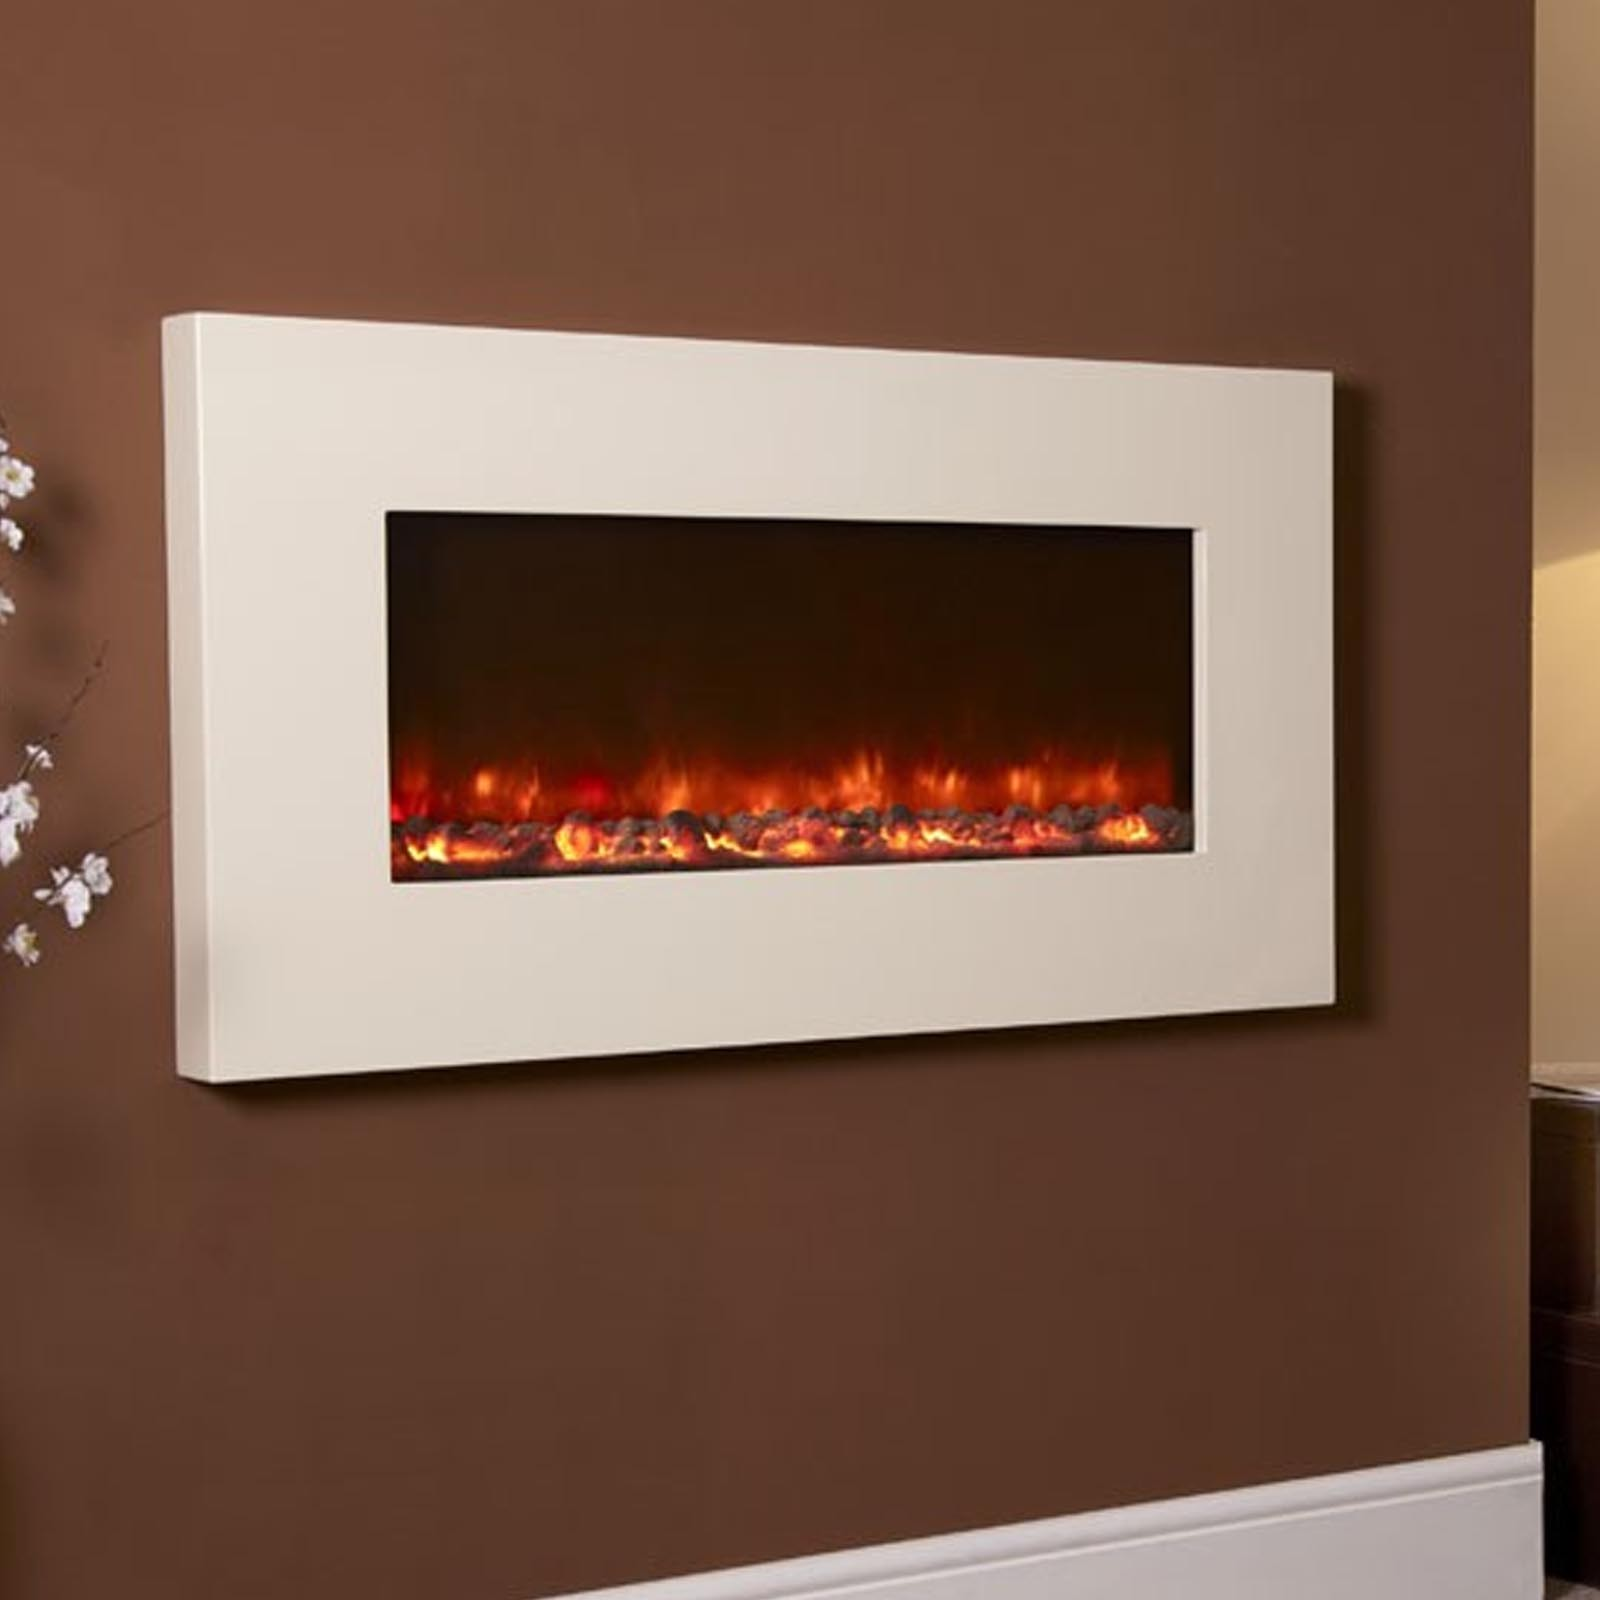 Huge Savings Celsi Electriflame Ivory Electric Fire